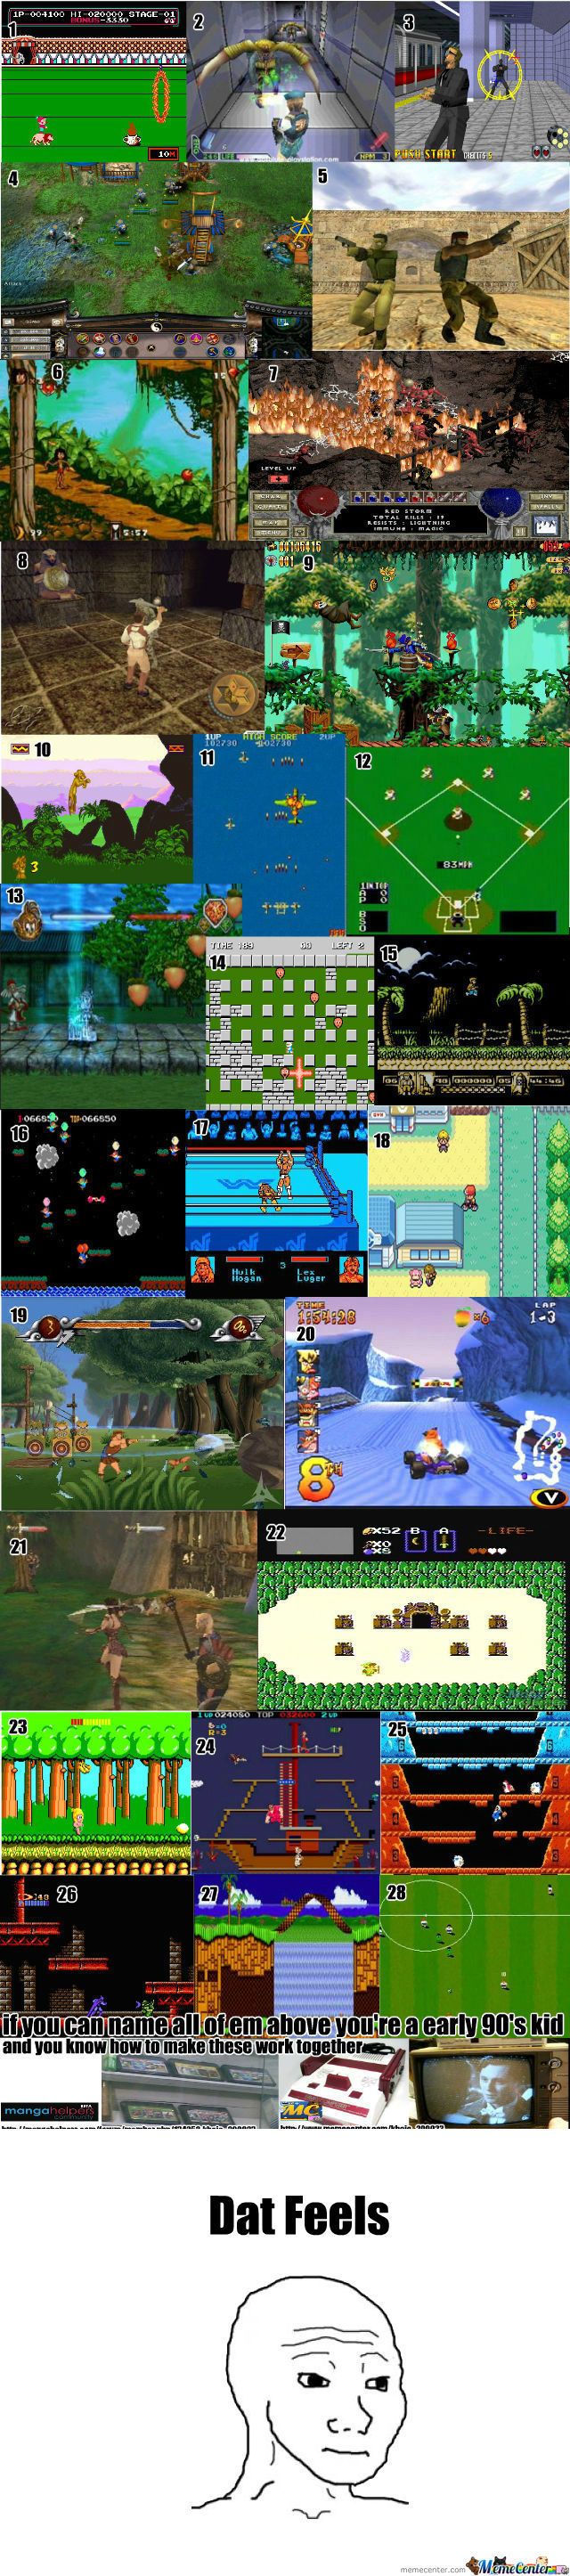 [RMX] Games I Used To Play Compilation Part 2